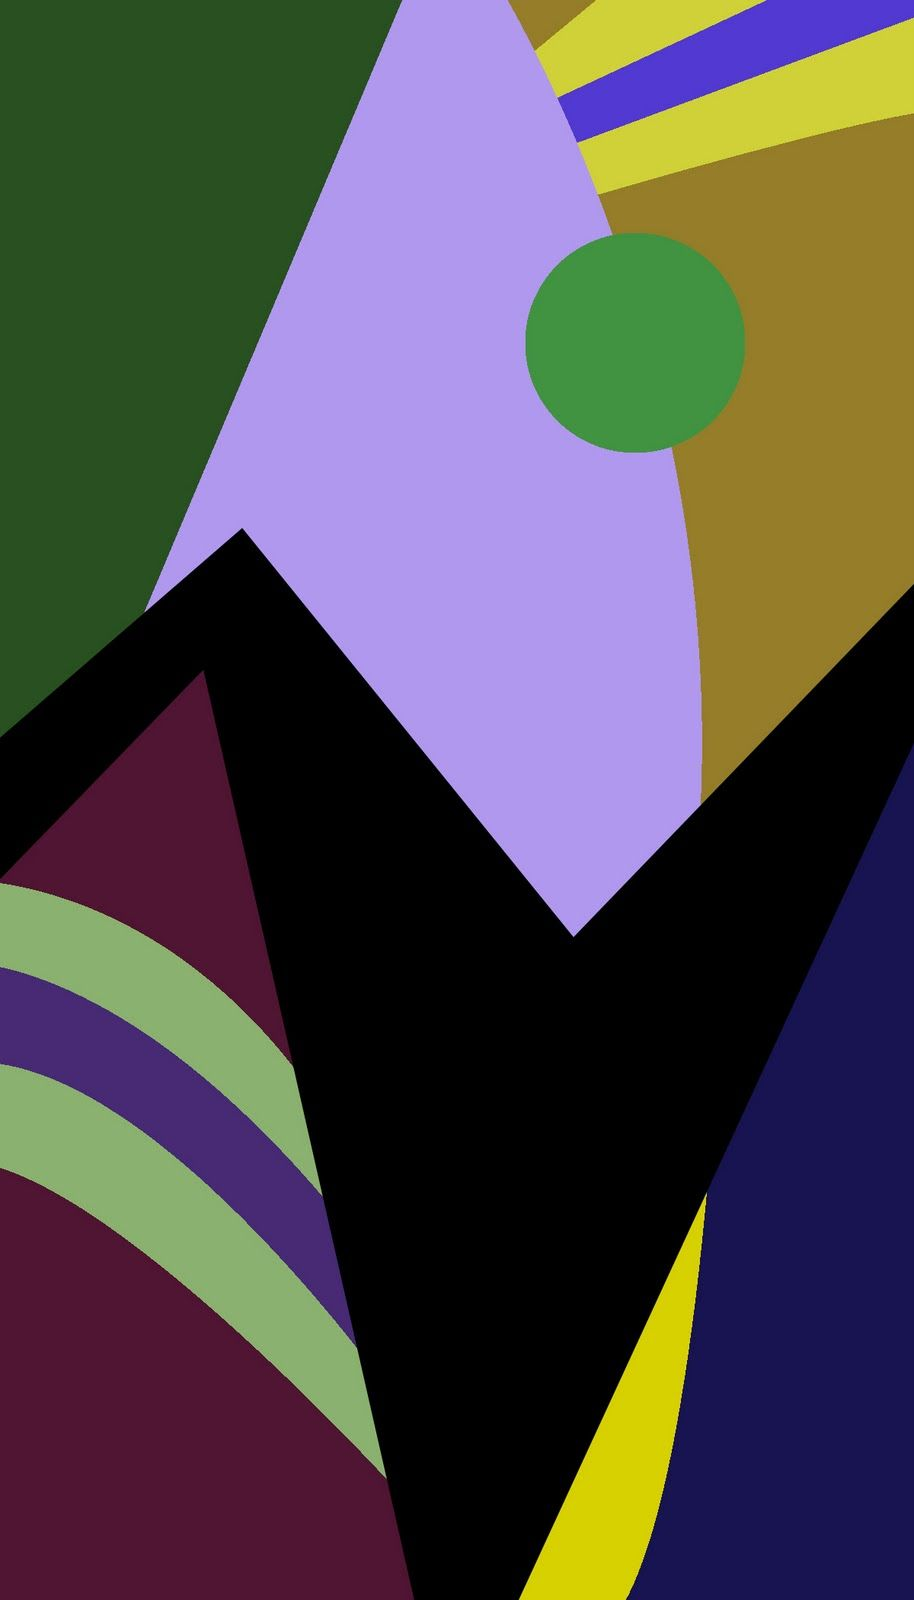 Color Schemes Design 1 Color Schemes Design Double Complementary Colors Color Schemes